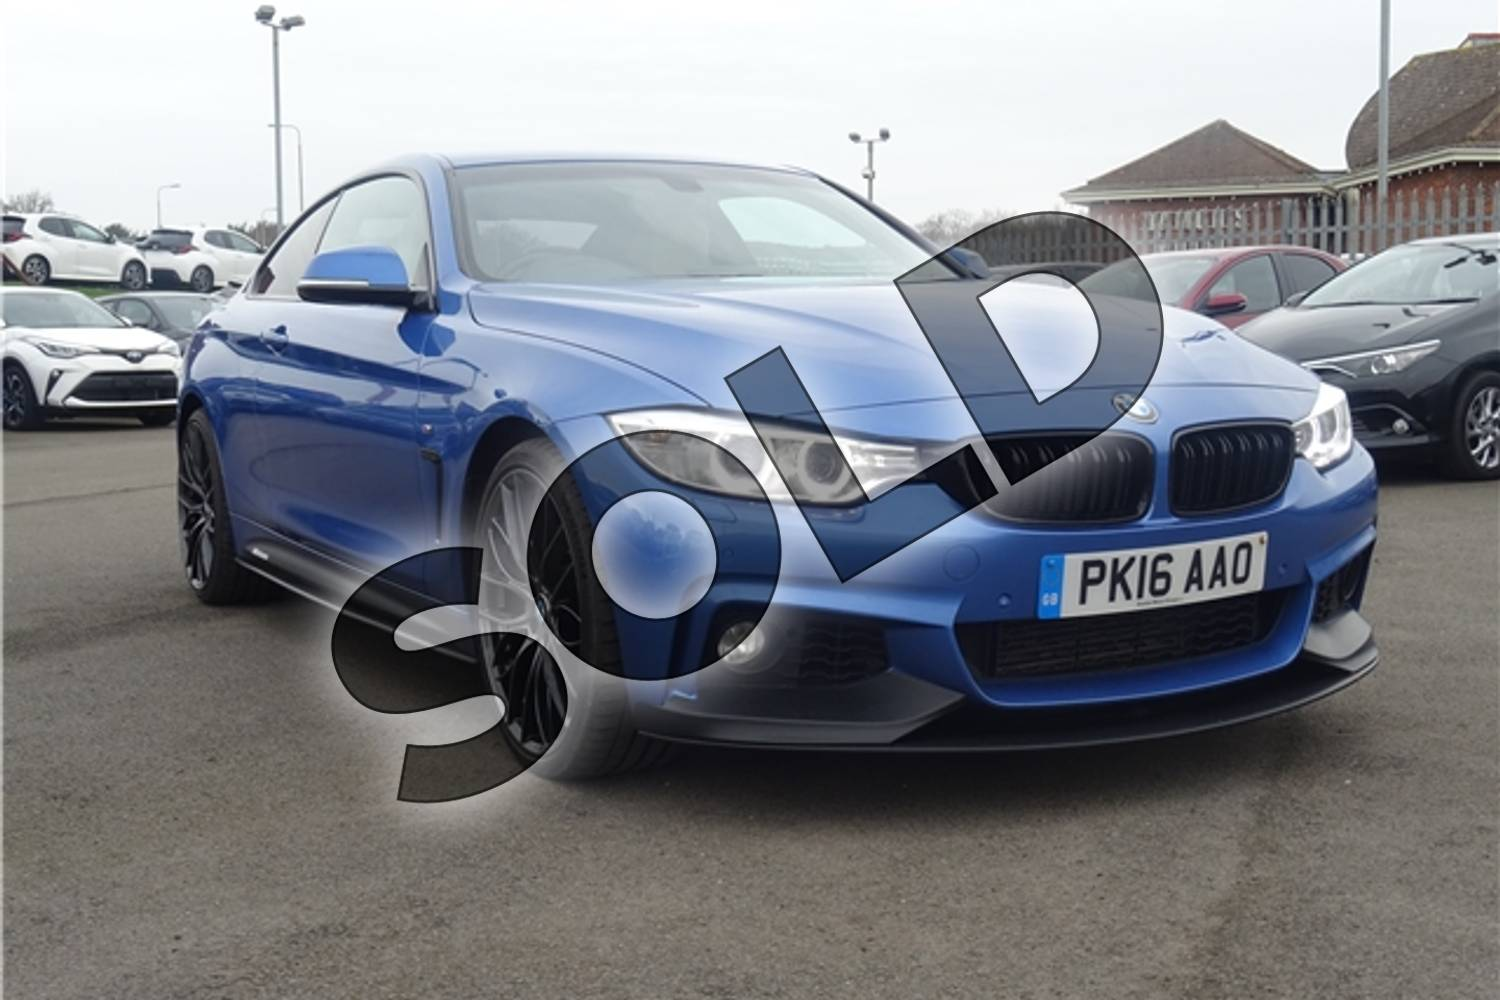 2016 BMW 4 Series Diesel Coupe 435d xDrive M Sport 2dr Auto (Professional Media) in Individual paint - Tanzanite blue at Listers Toyota Lincoln